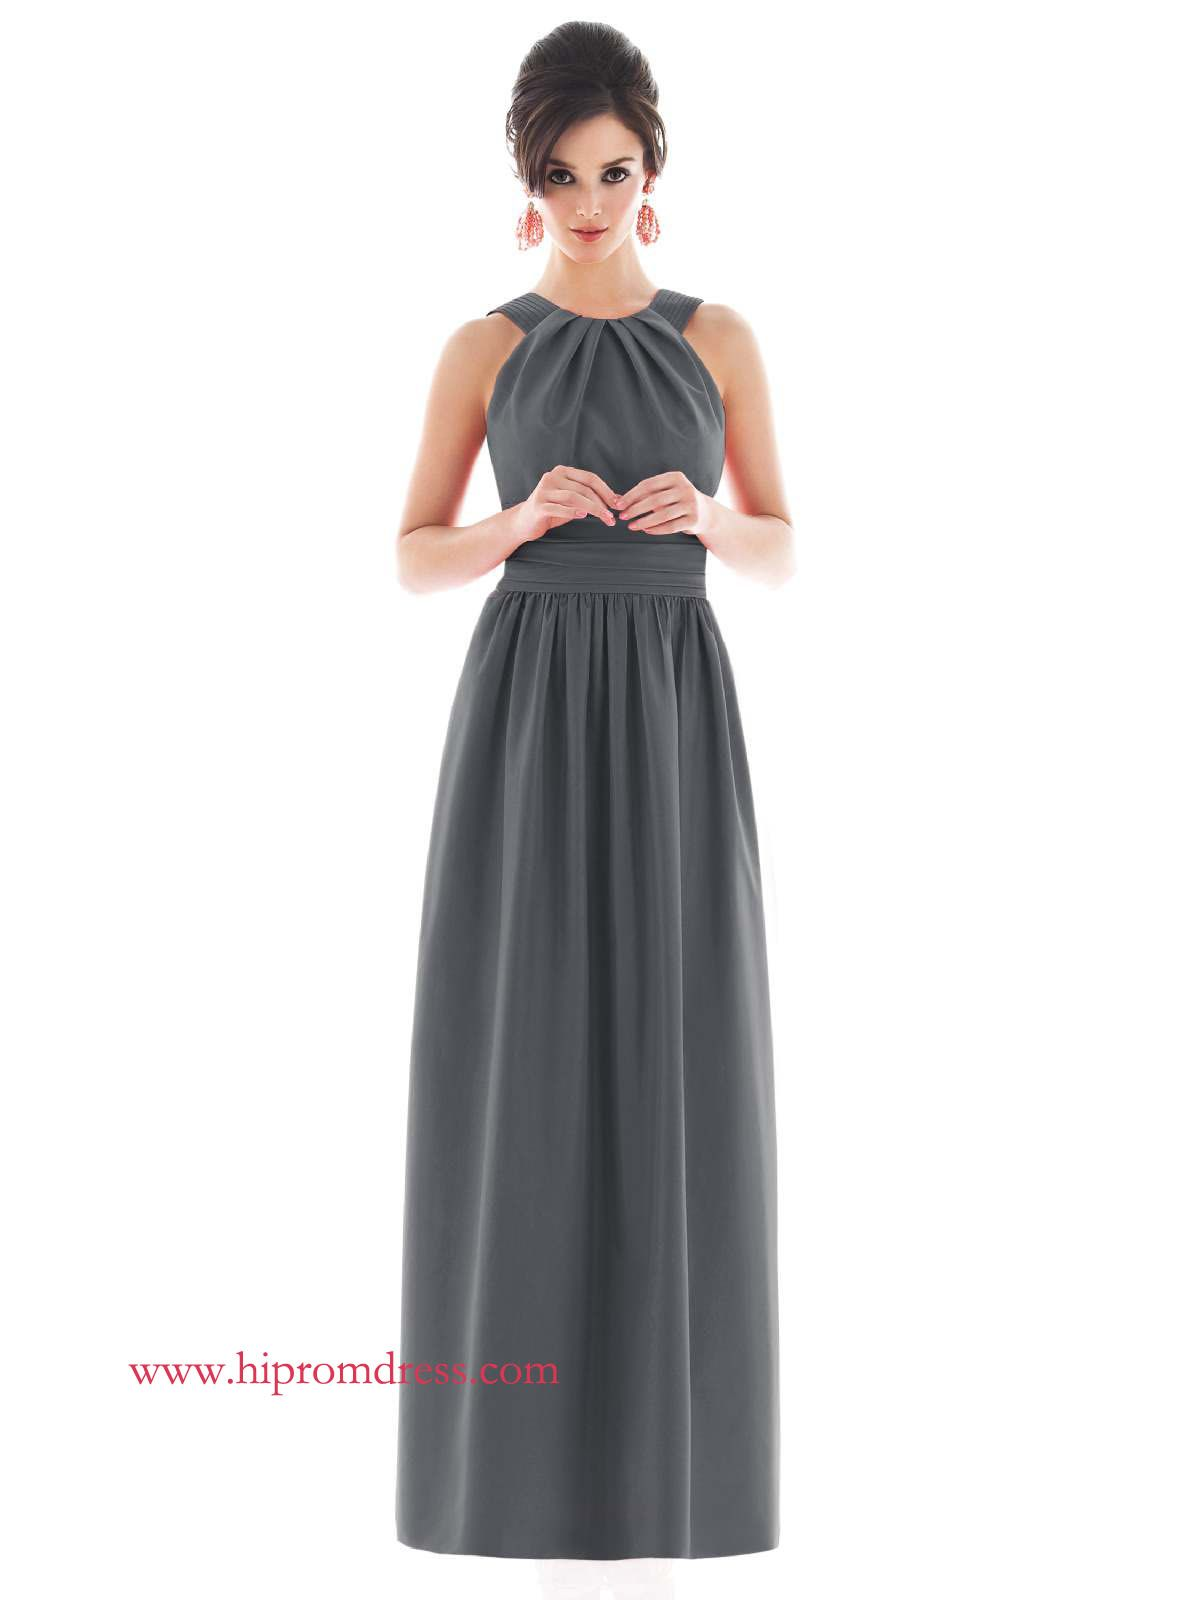 Alfred Sung Bridesmaid Dress In Dupioni At Weddington Way Find The Perfect Made To Order Dresses For Your Bridal Party Favorite